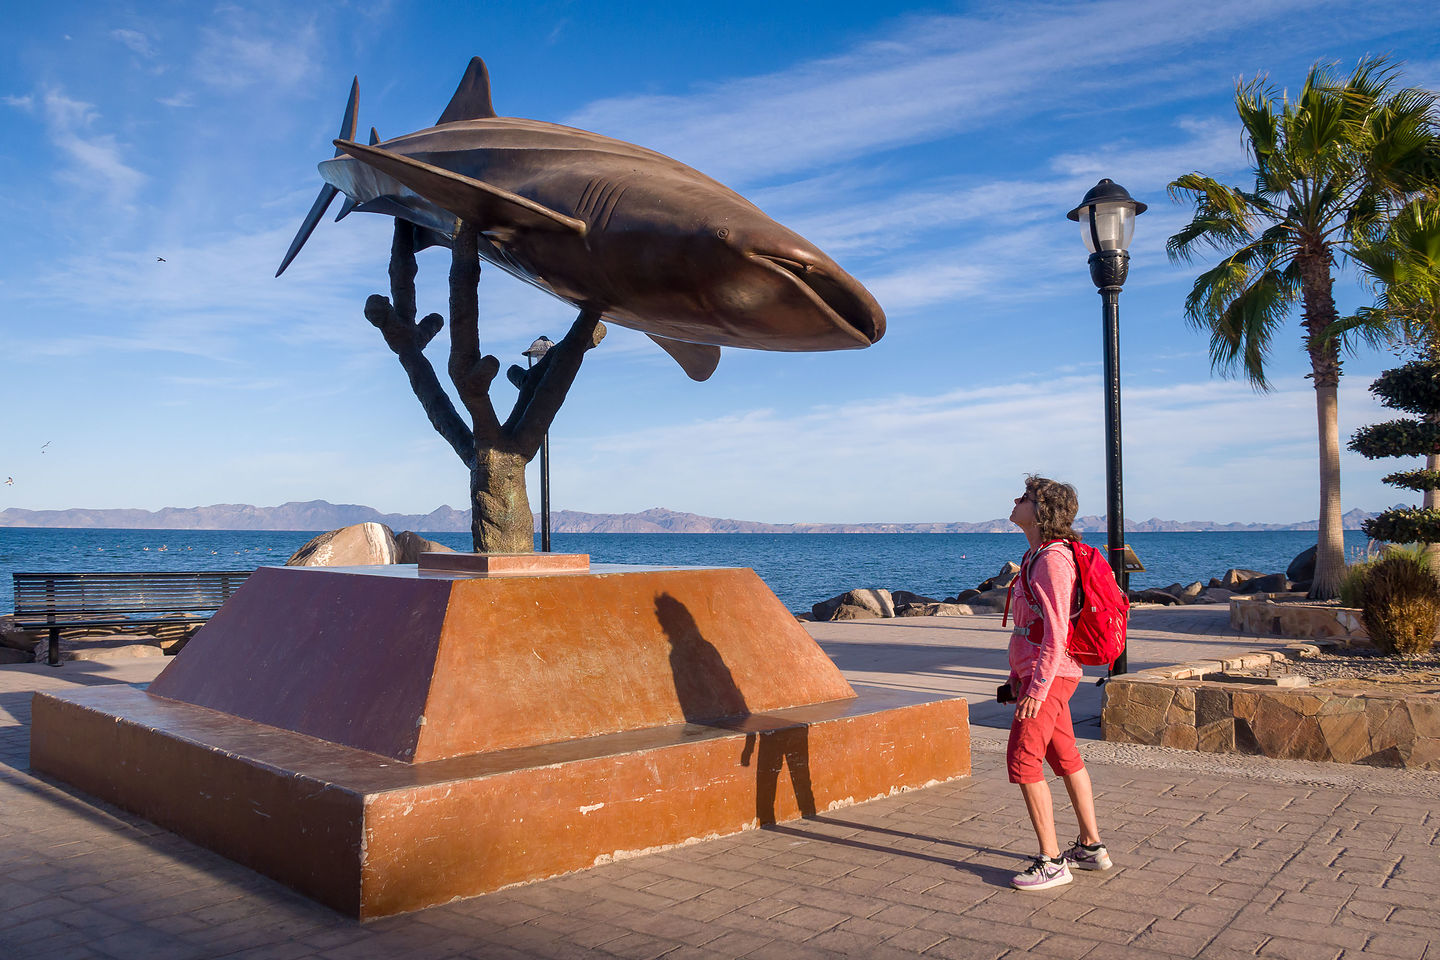 Lolo staring down a Whale Shark statue